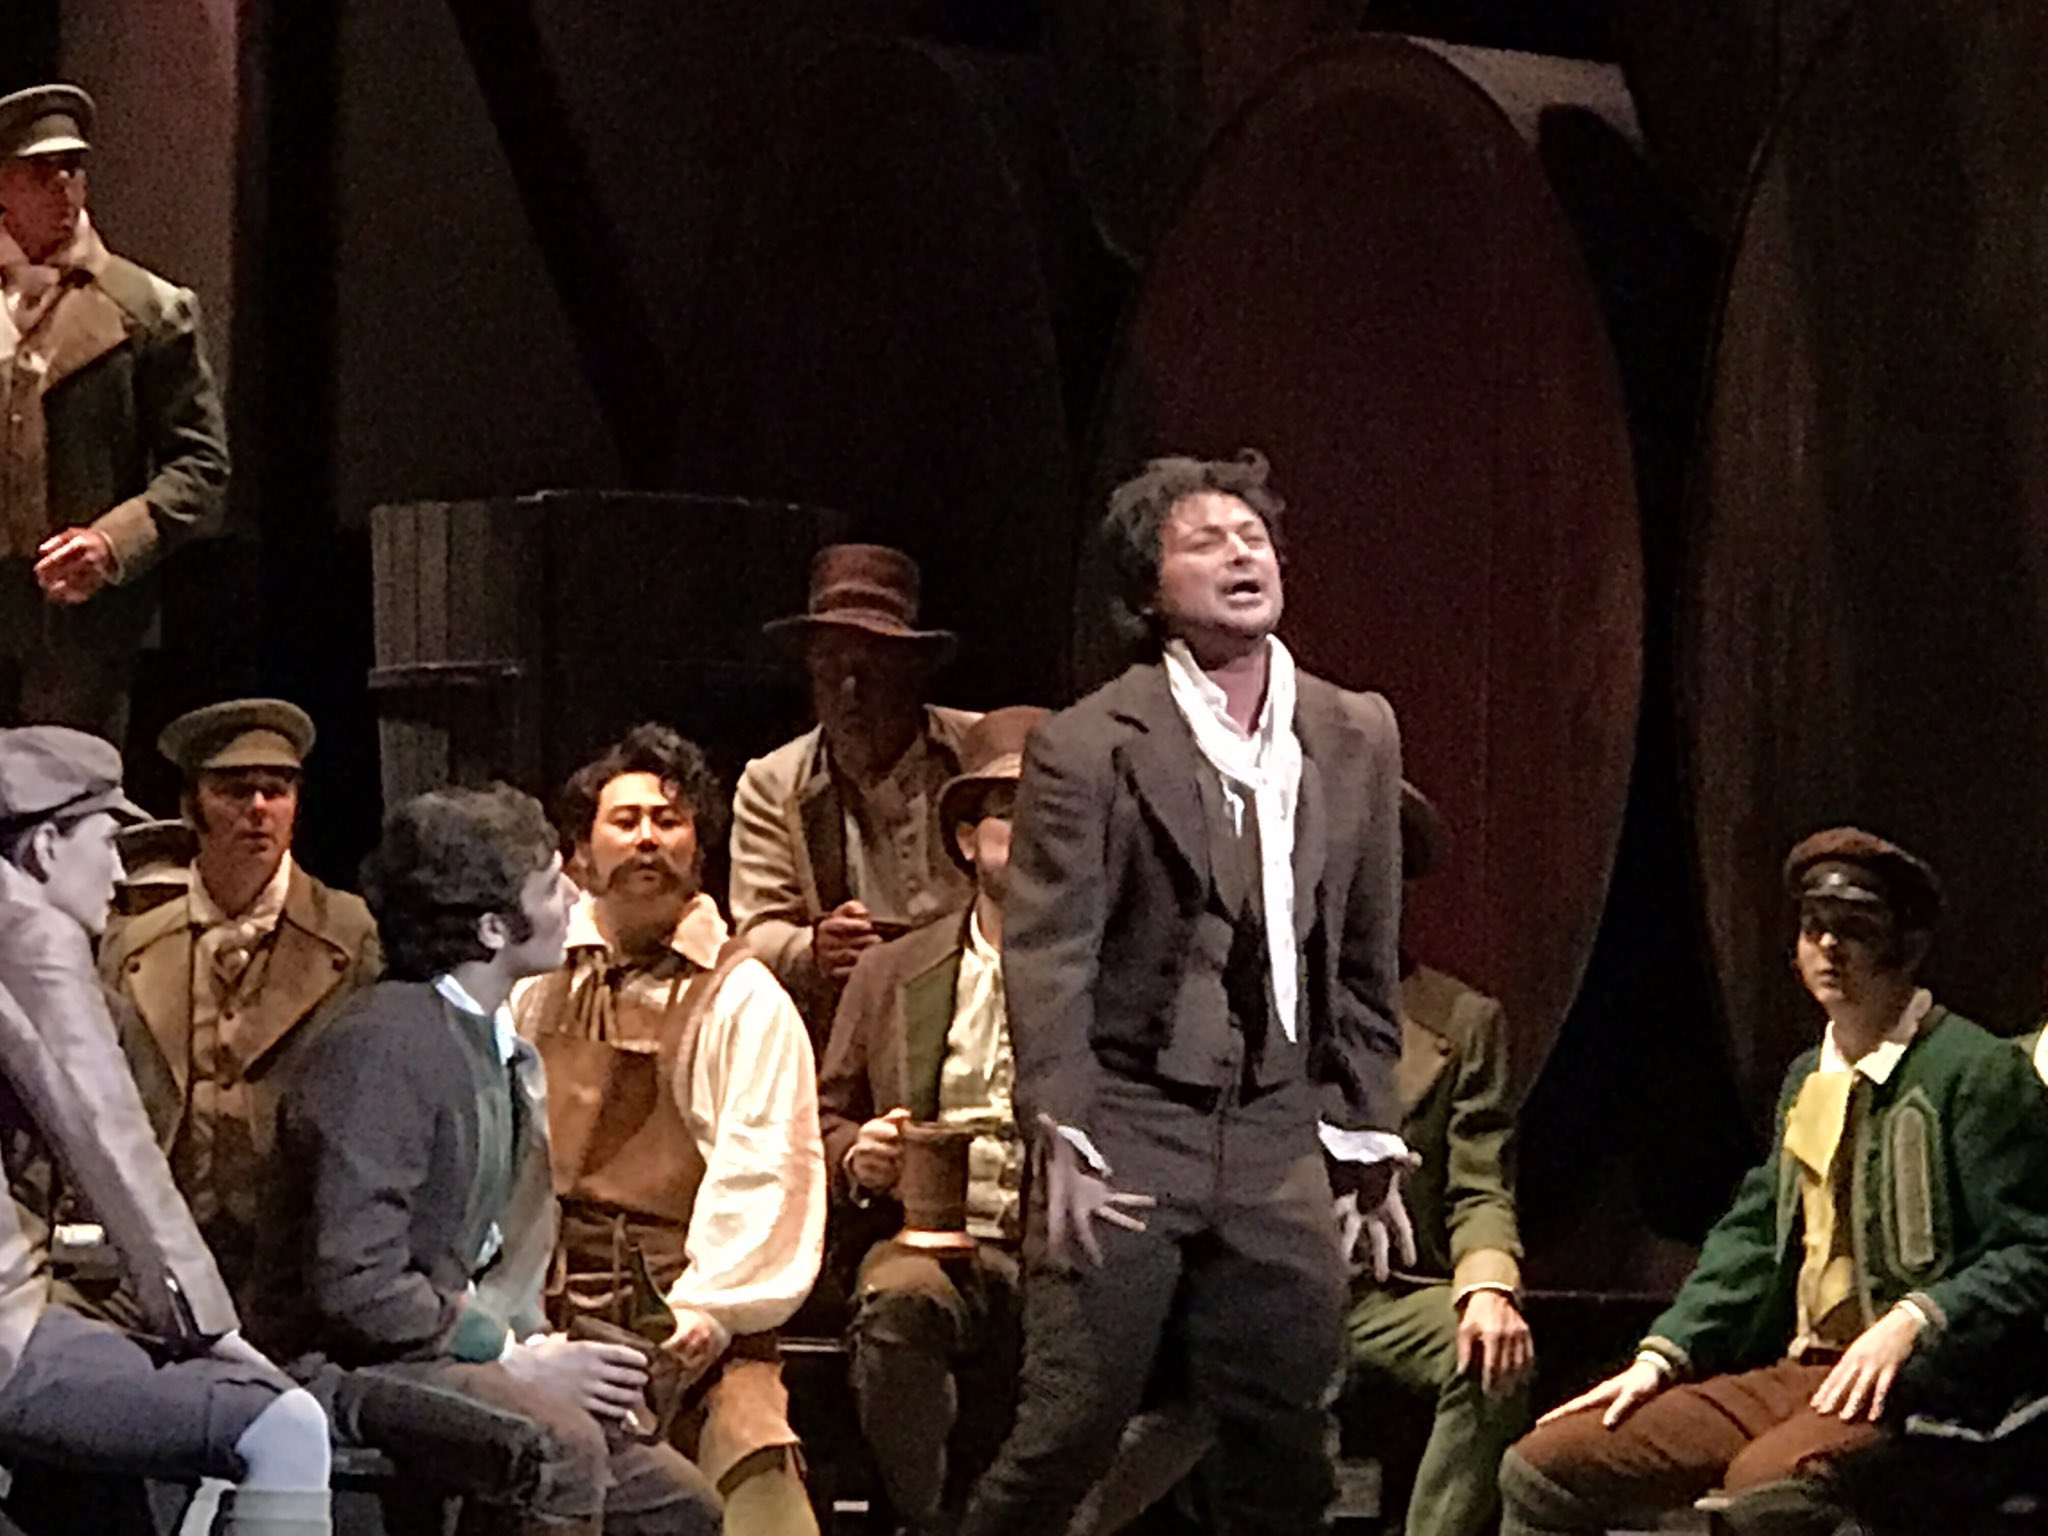 I wish all men would sing as passionately about women and love as @VittorioGrigolo does in @LAOpera 'S #talesofhoffman #laopera https://t.co/kPcphDDVUS